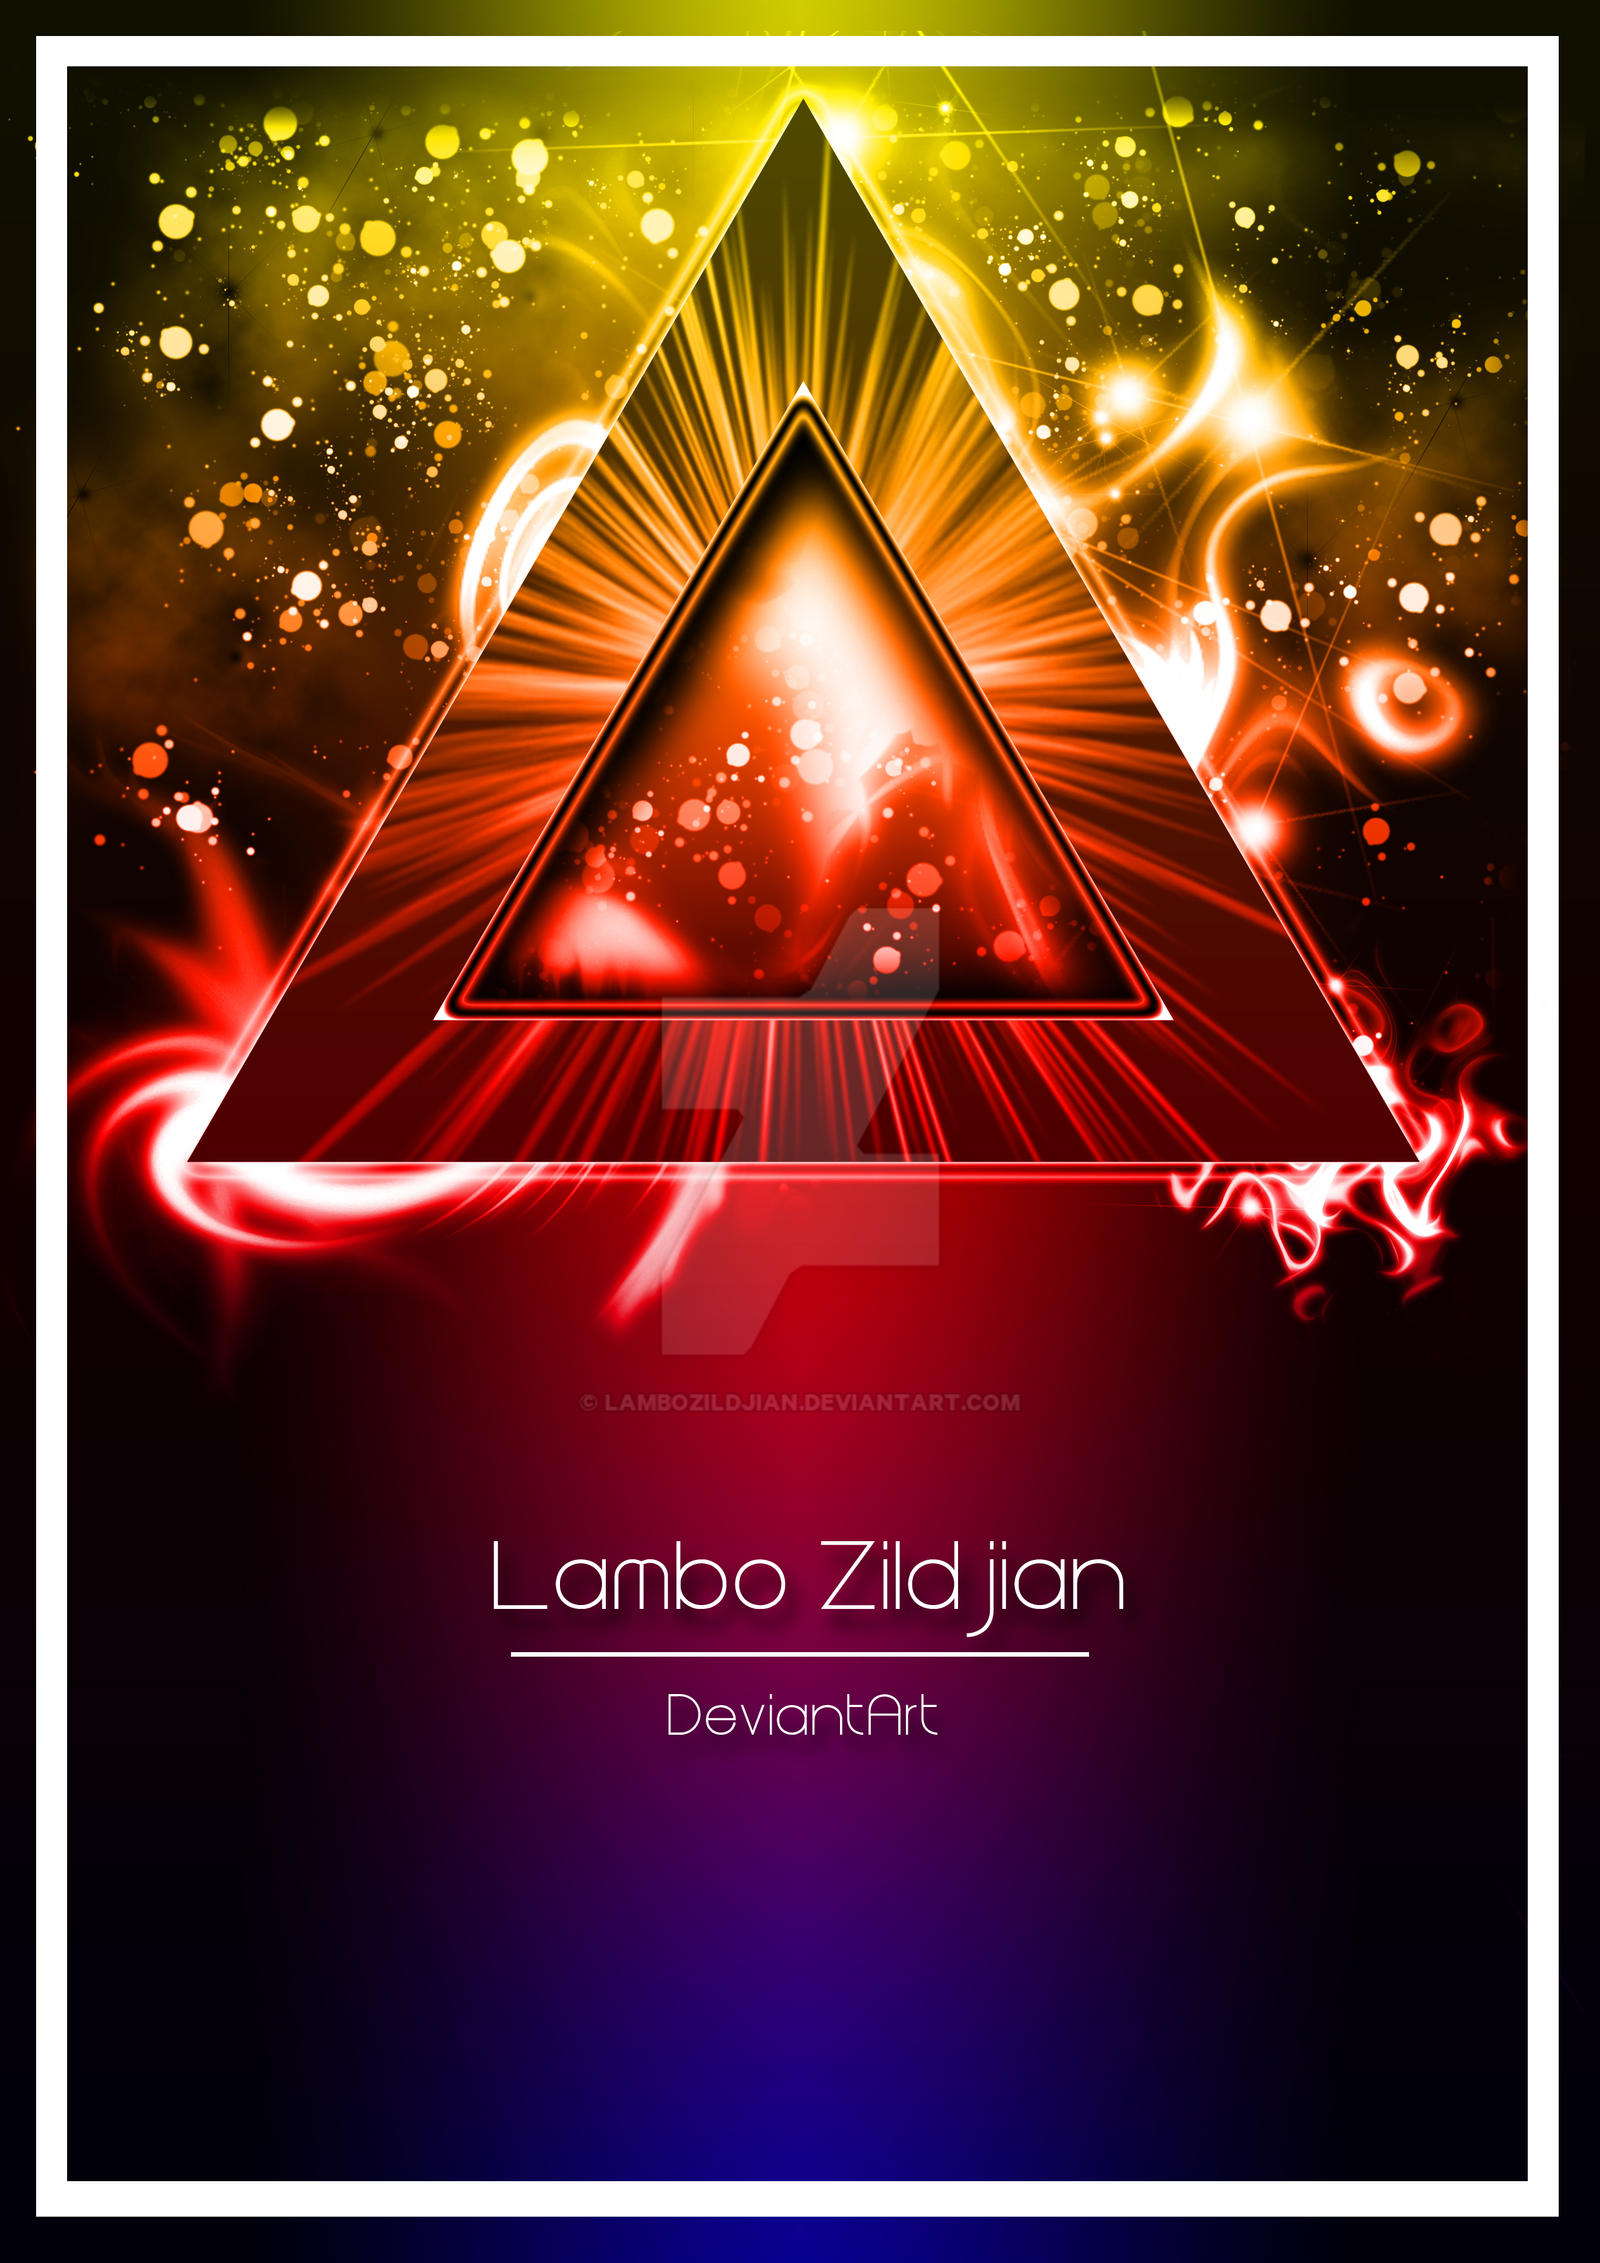 The Vibrant Triangle by LamboZildjian